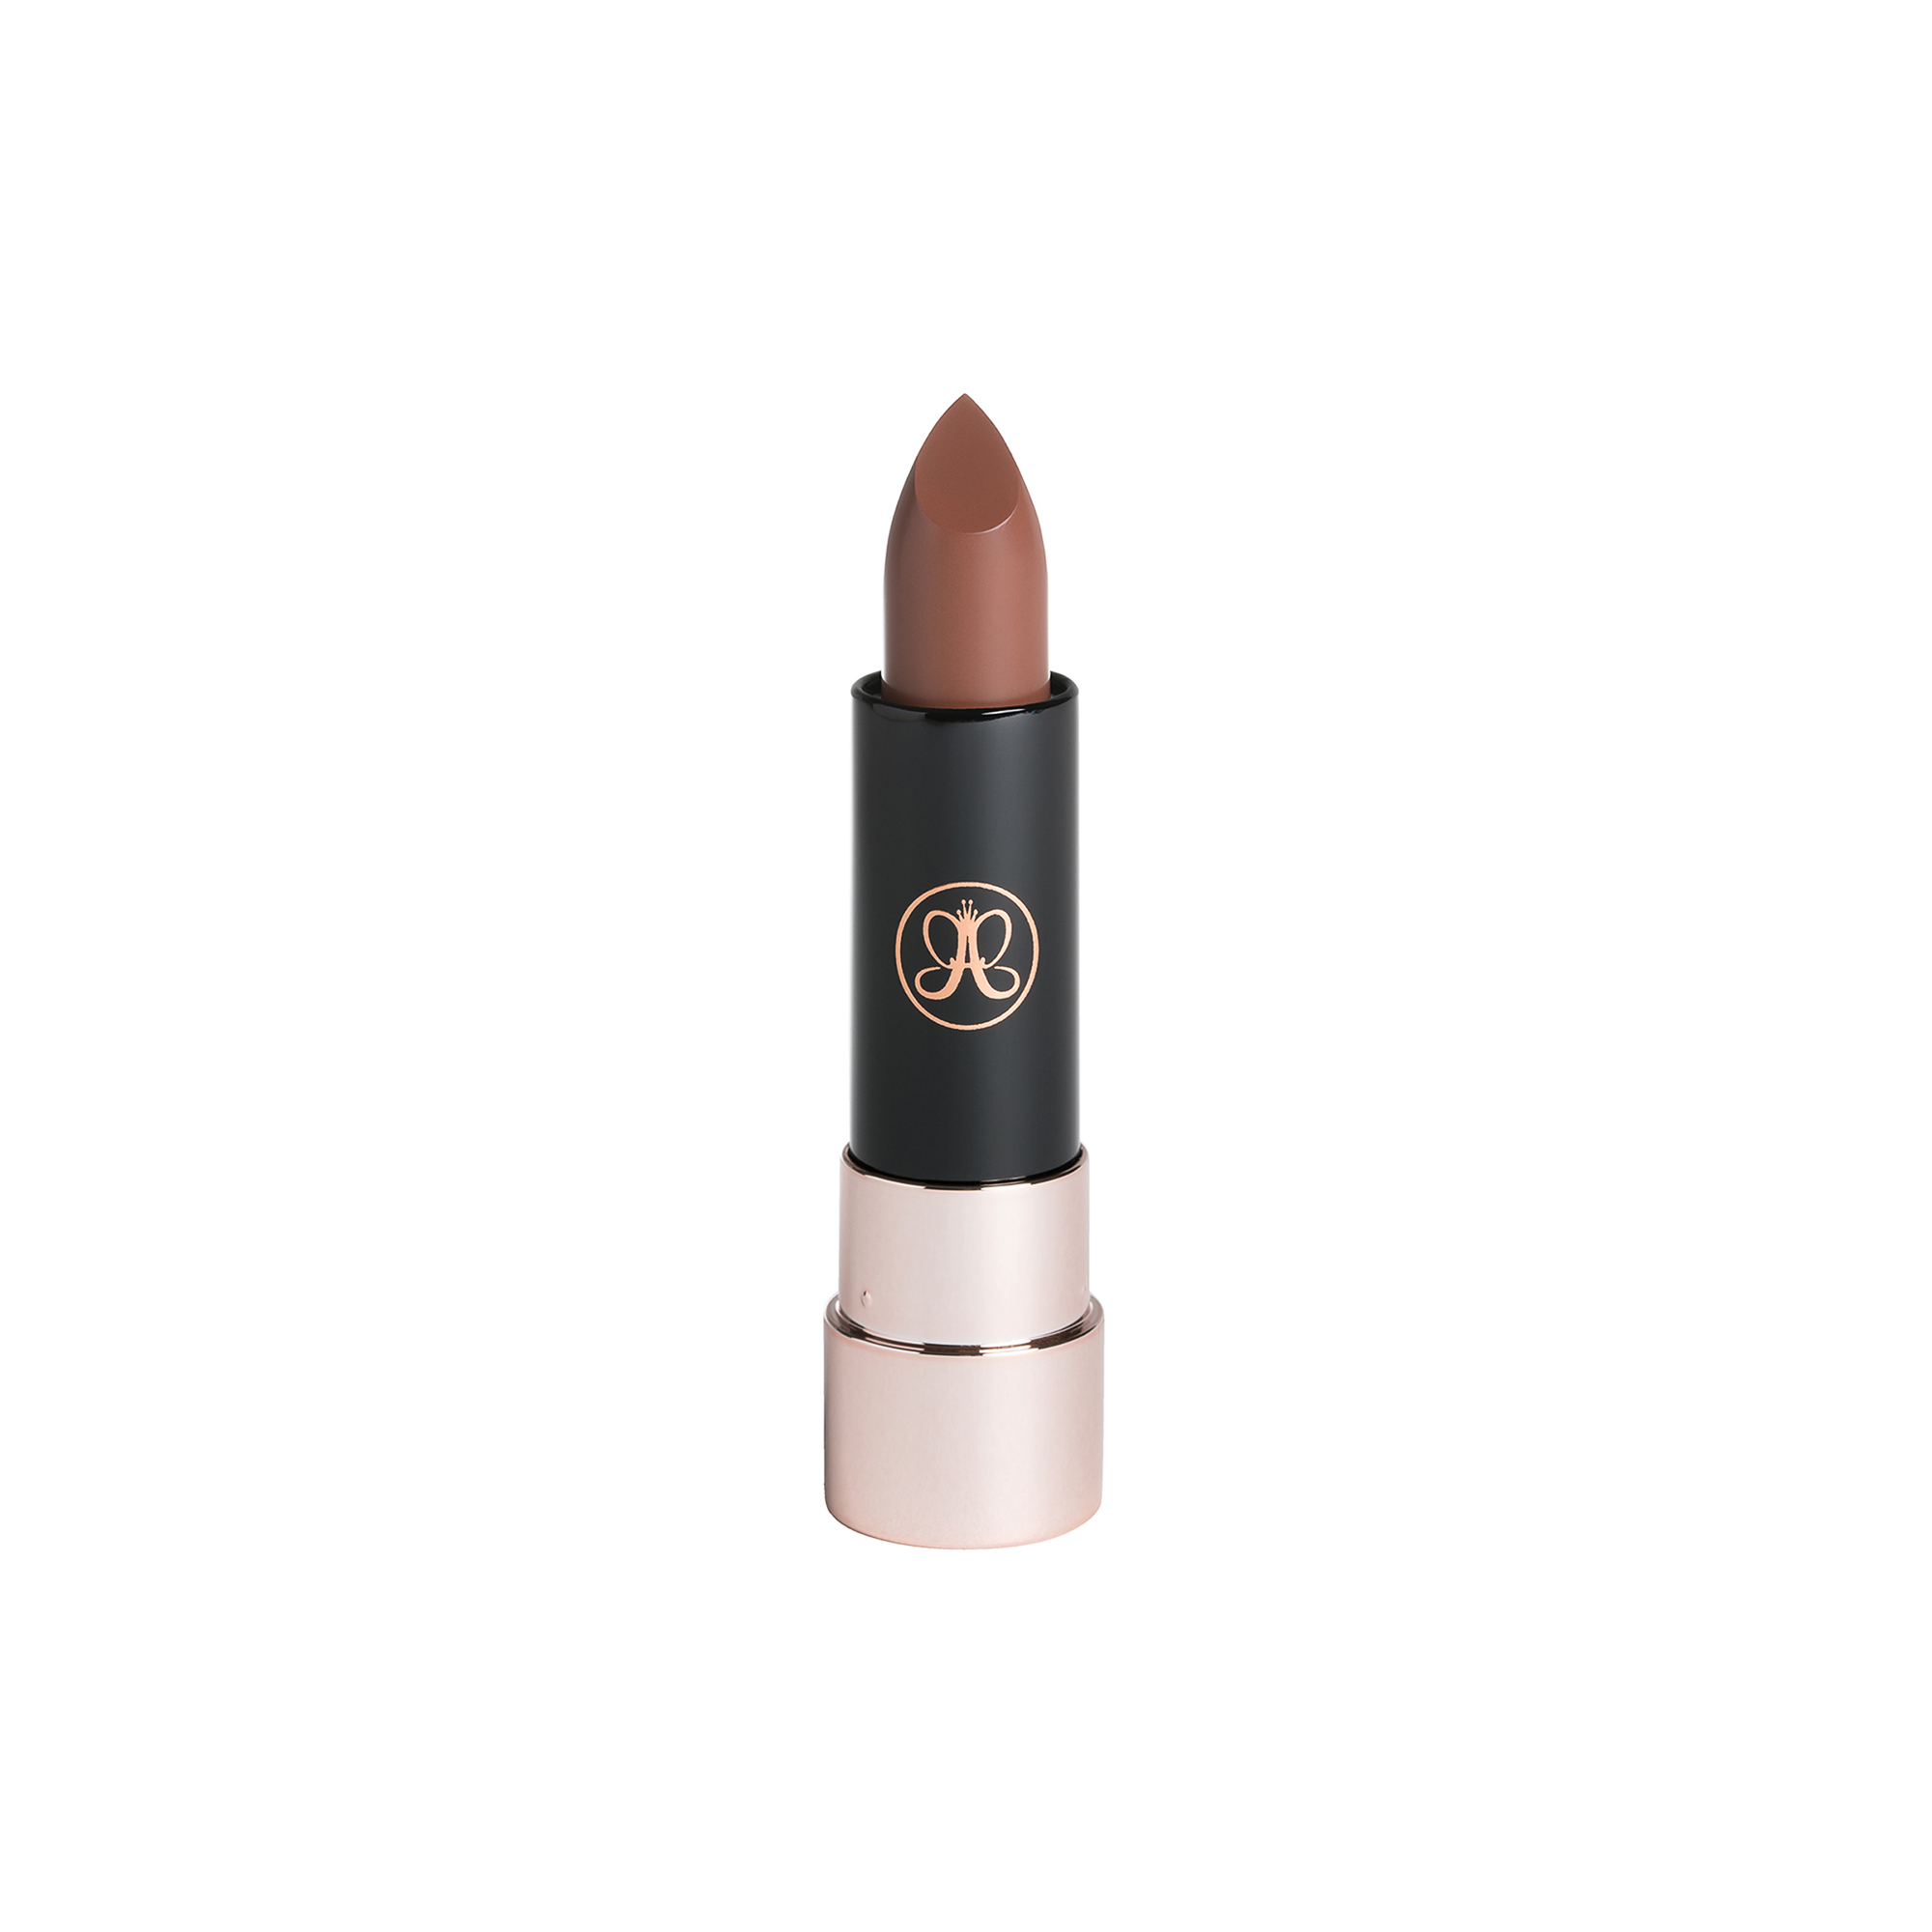 Matte Lipstick - Cool brown